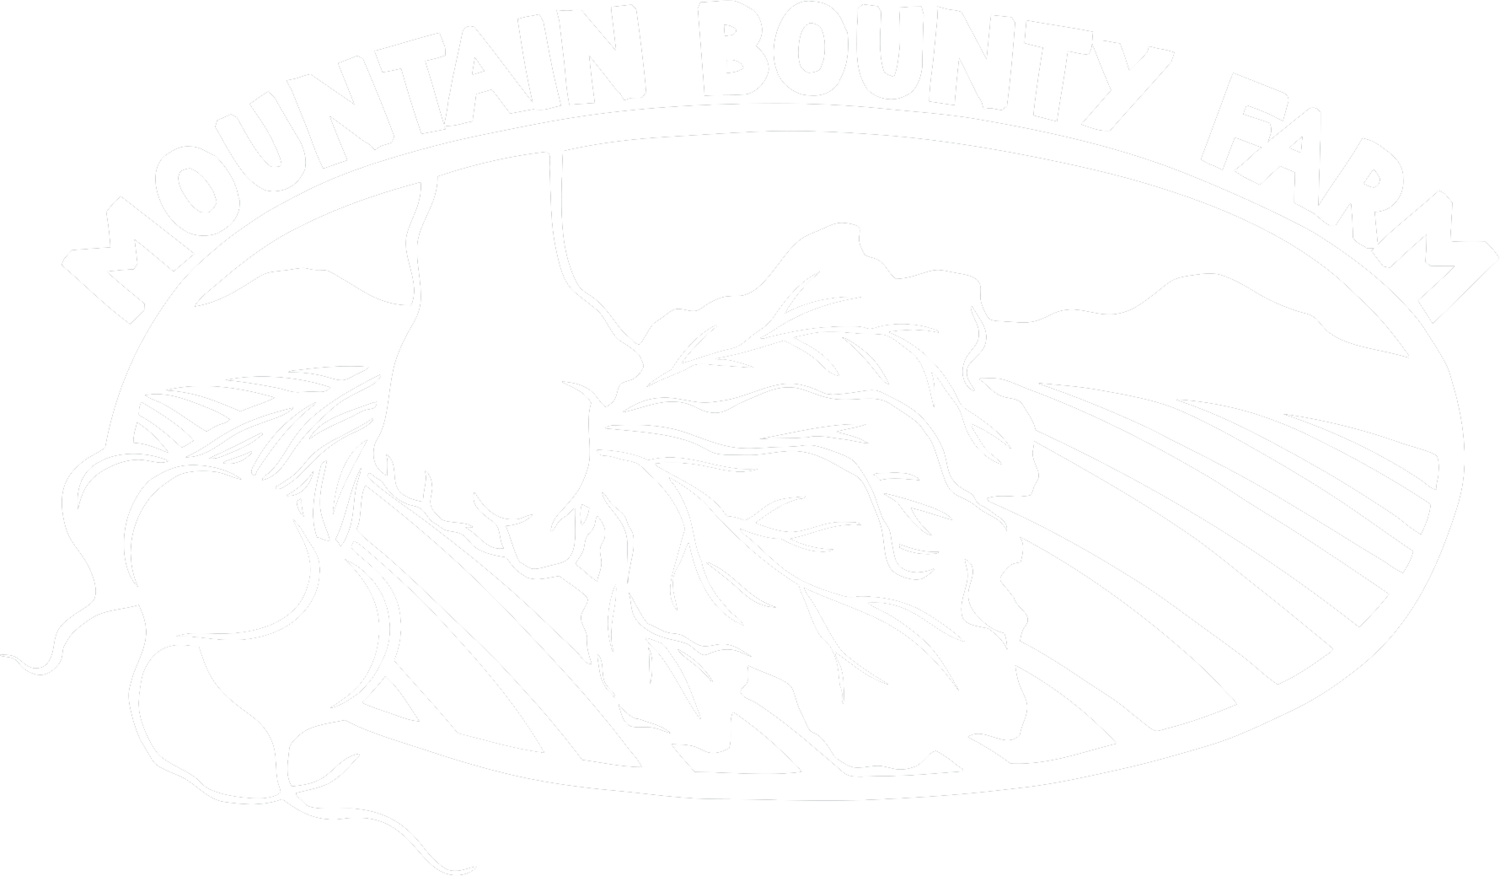 Mountain Bounty Farm